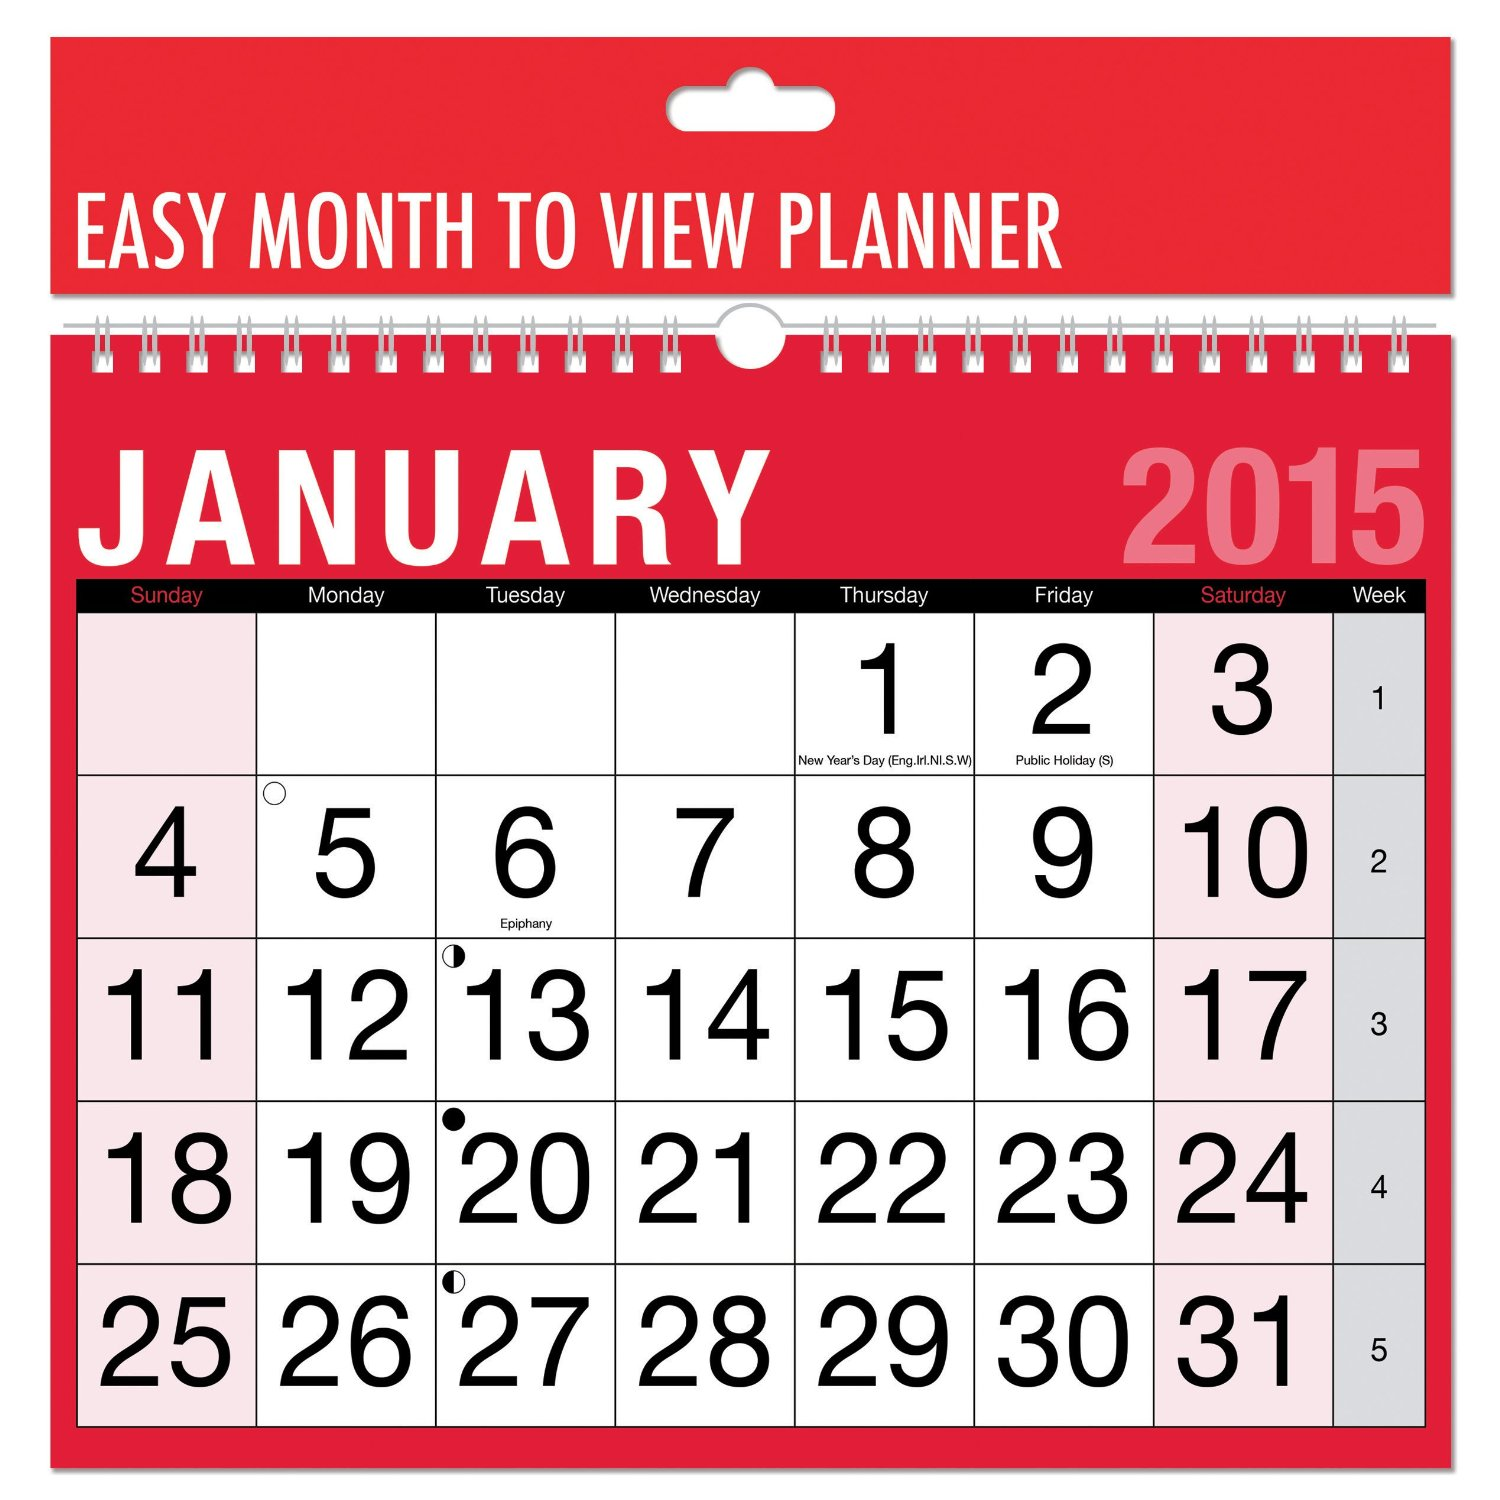 Bargain 2015 Calendar View Planner  U00a31 Delivered At Amazon